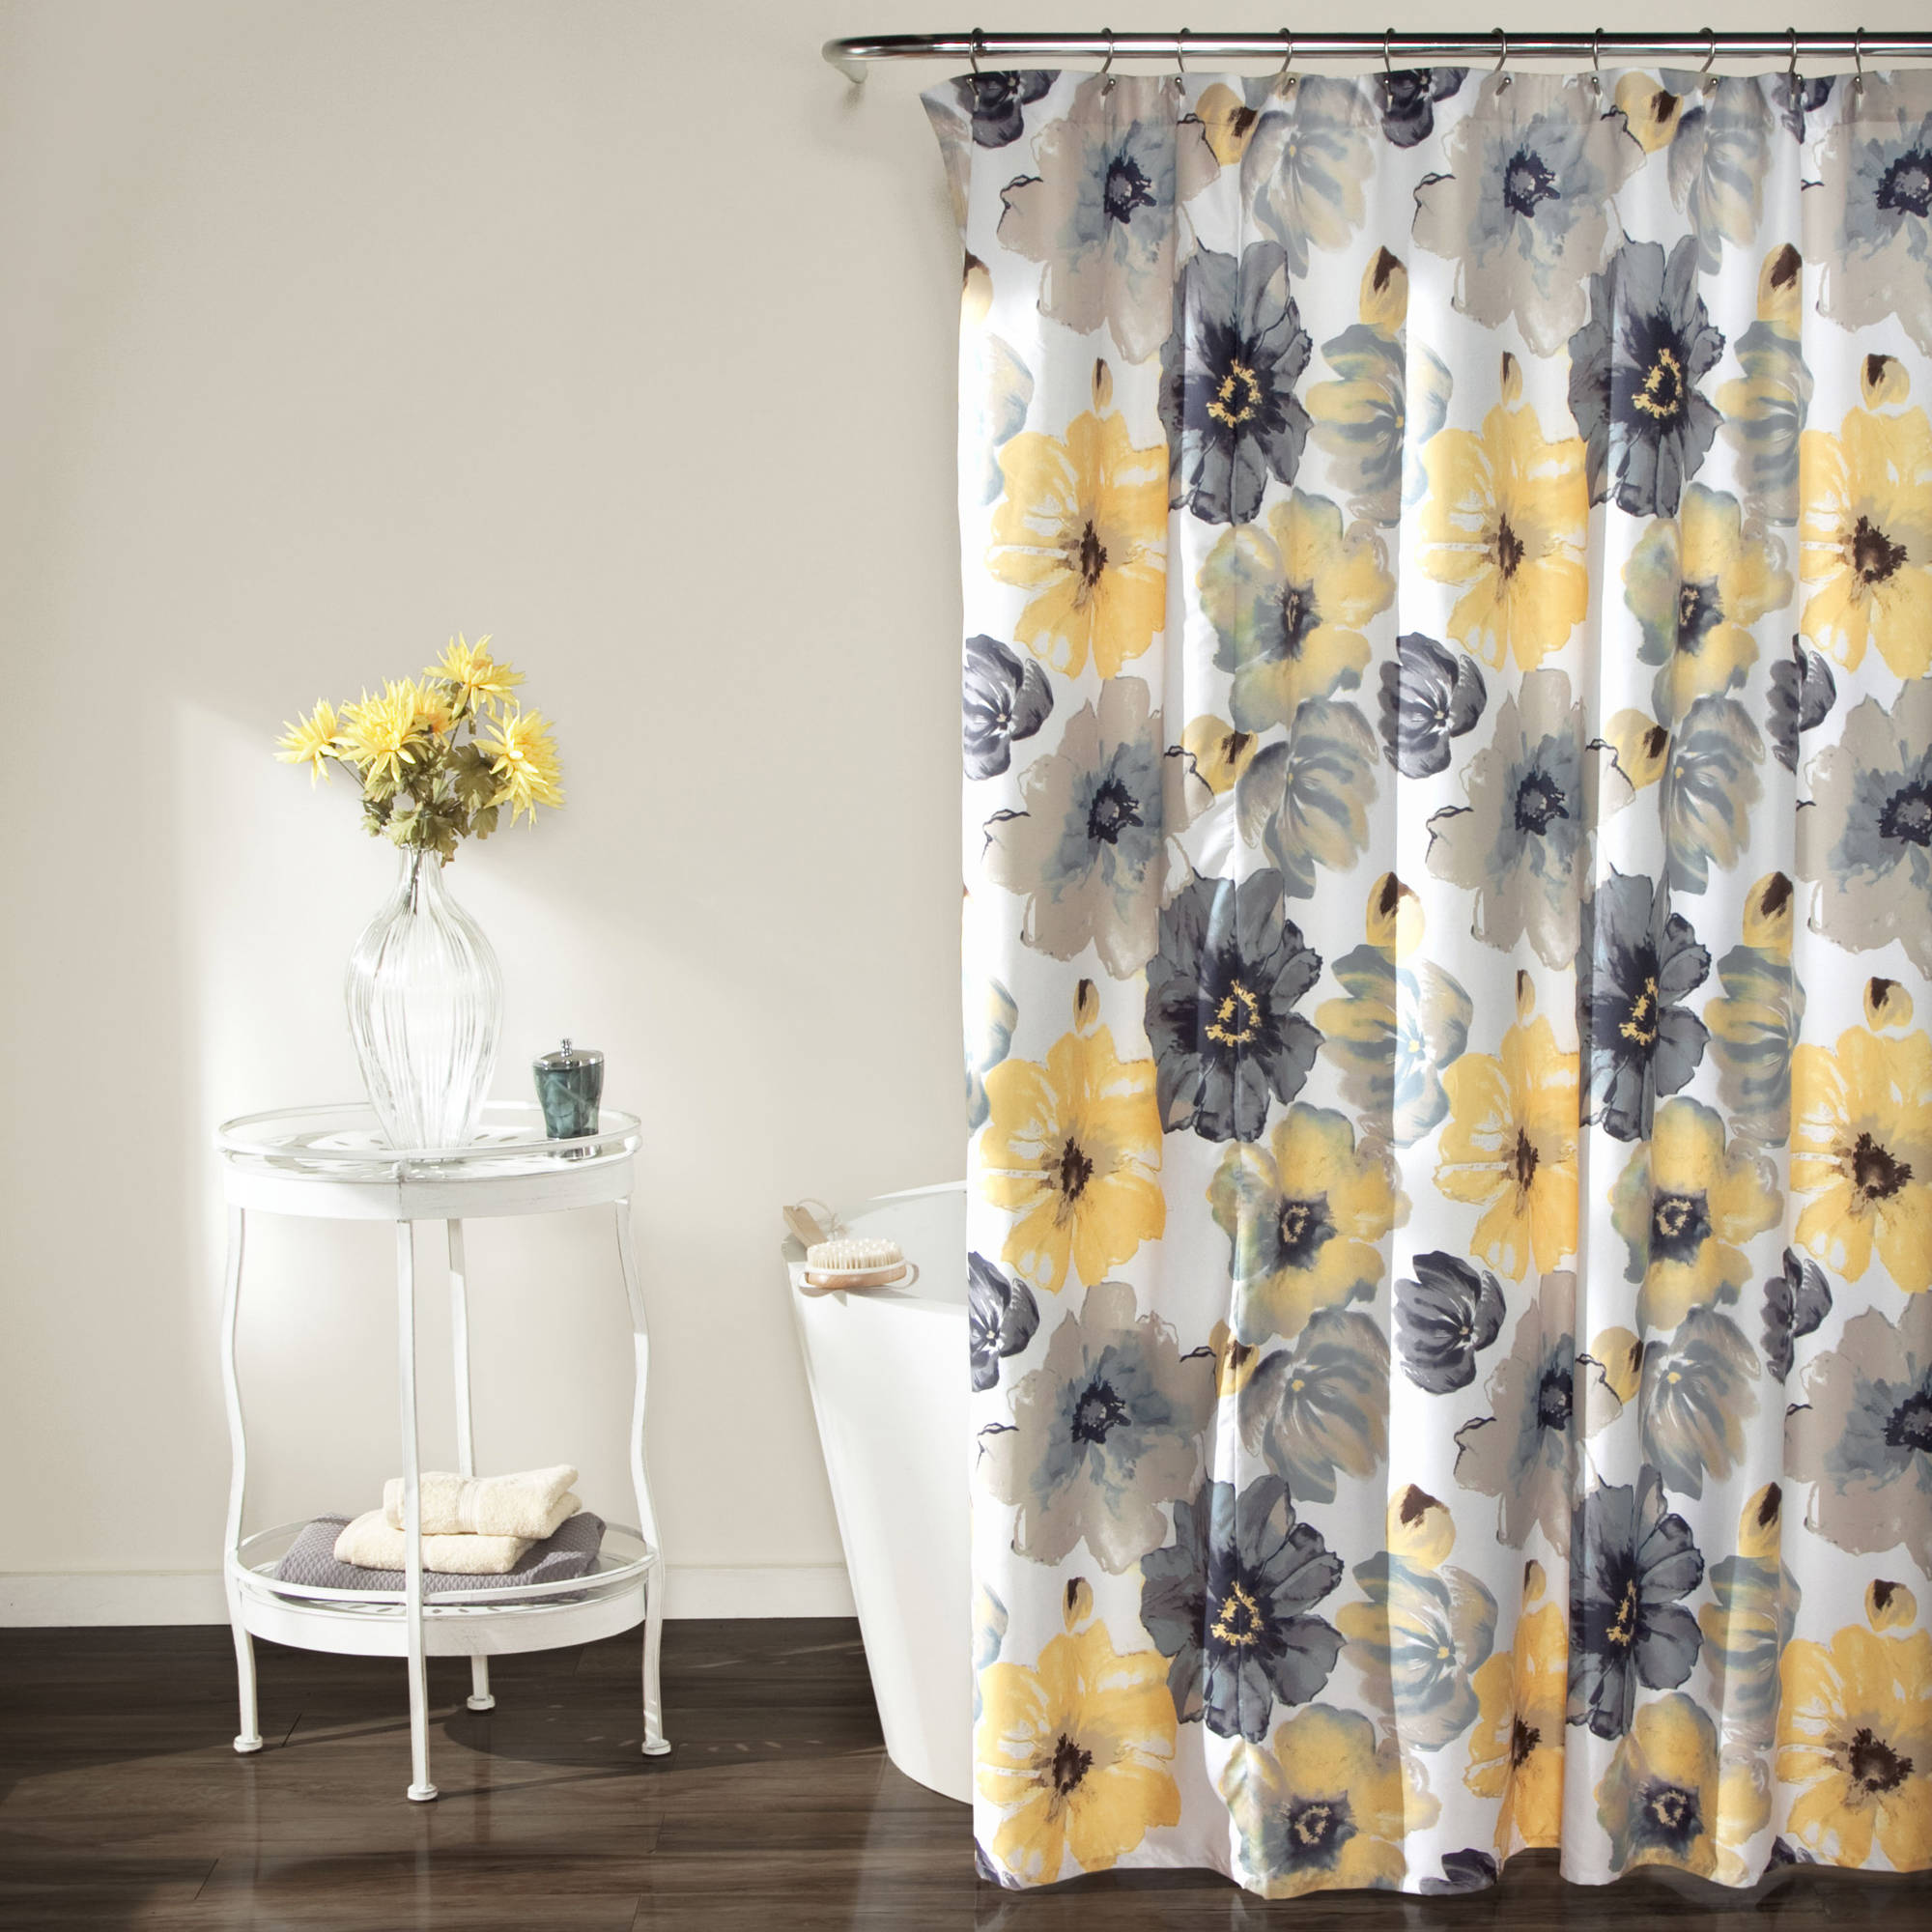 Floral Shower Curtain | Botanical Shower Curtains | Boho Shower Curtain